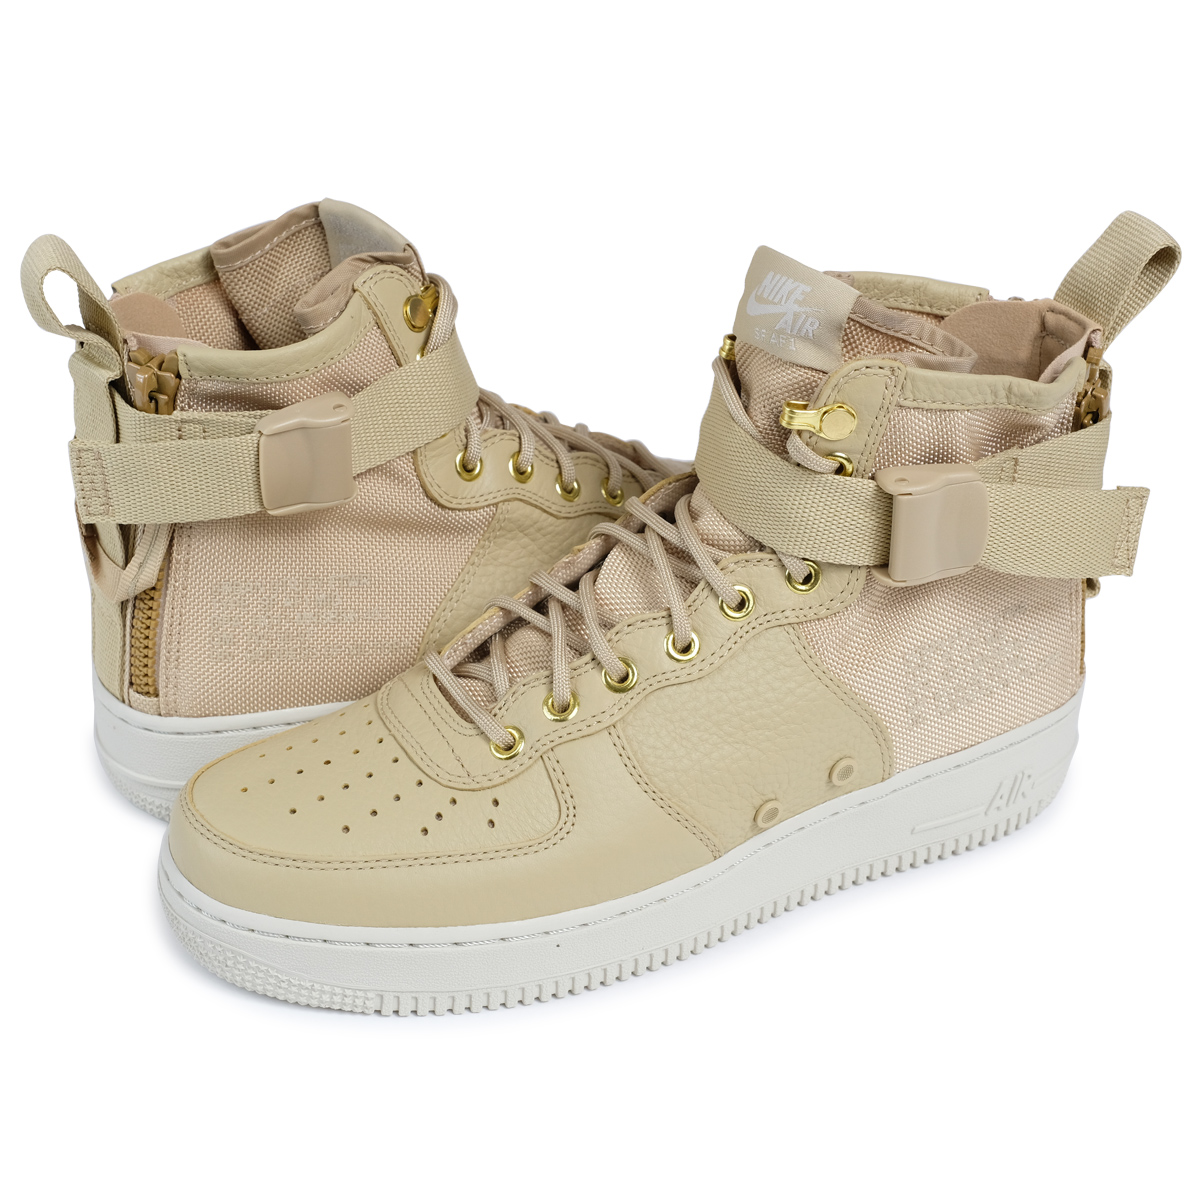 NIKE SPECIAL FIELD AIR FORCE 1 Nike air force 1 MID sneakers 917,753- ec4110e01